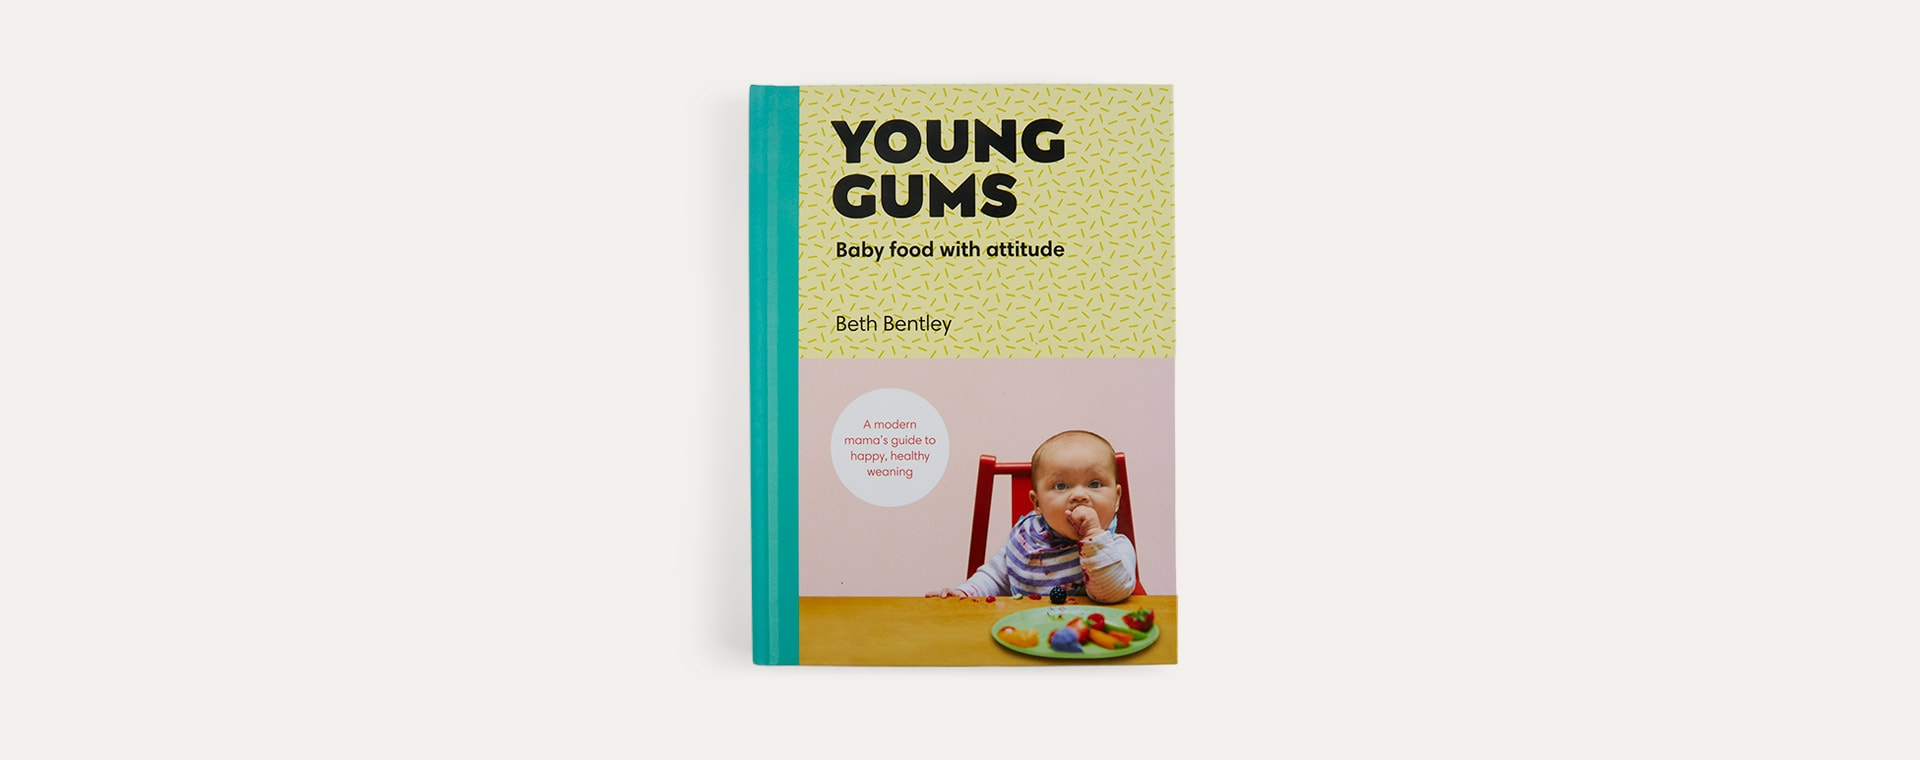 Pink bookspeed Young Gums: Baby Food With Attitude